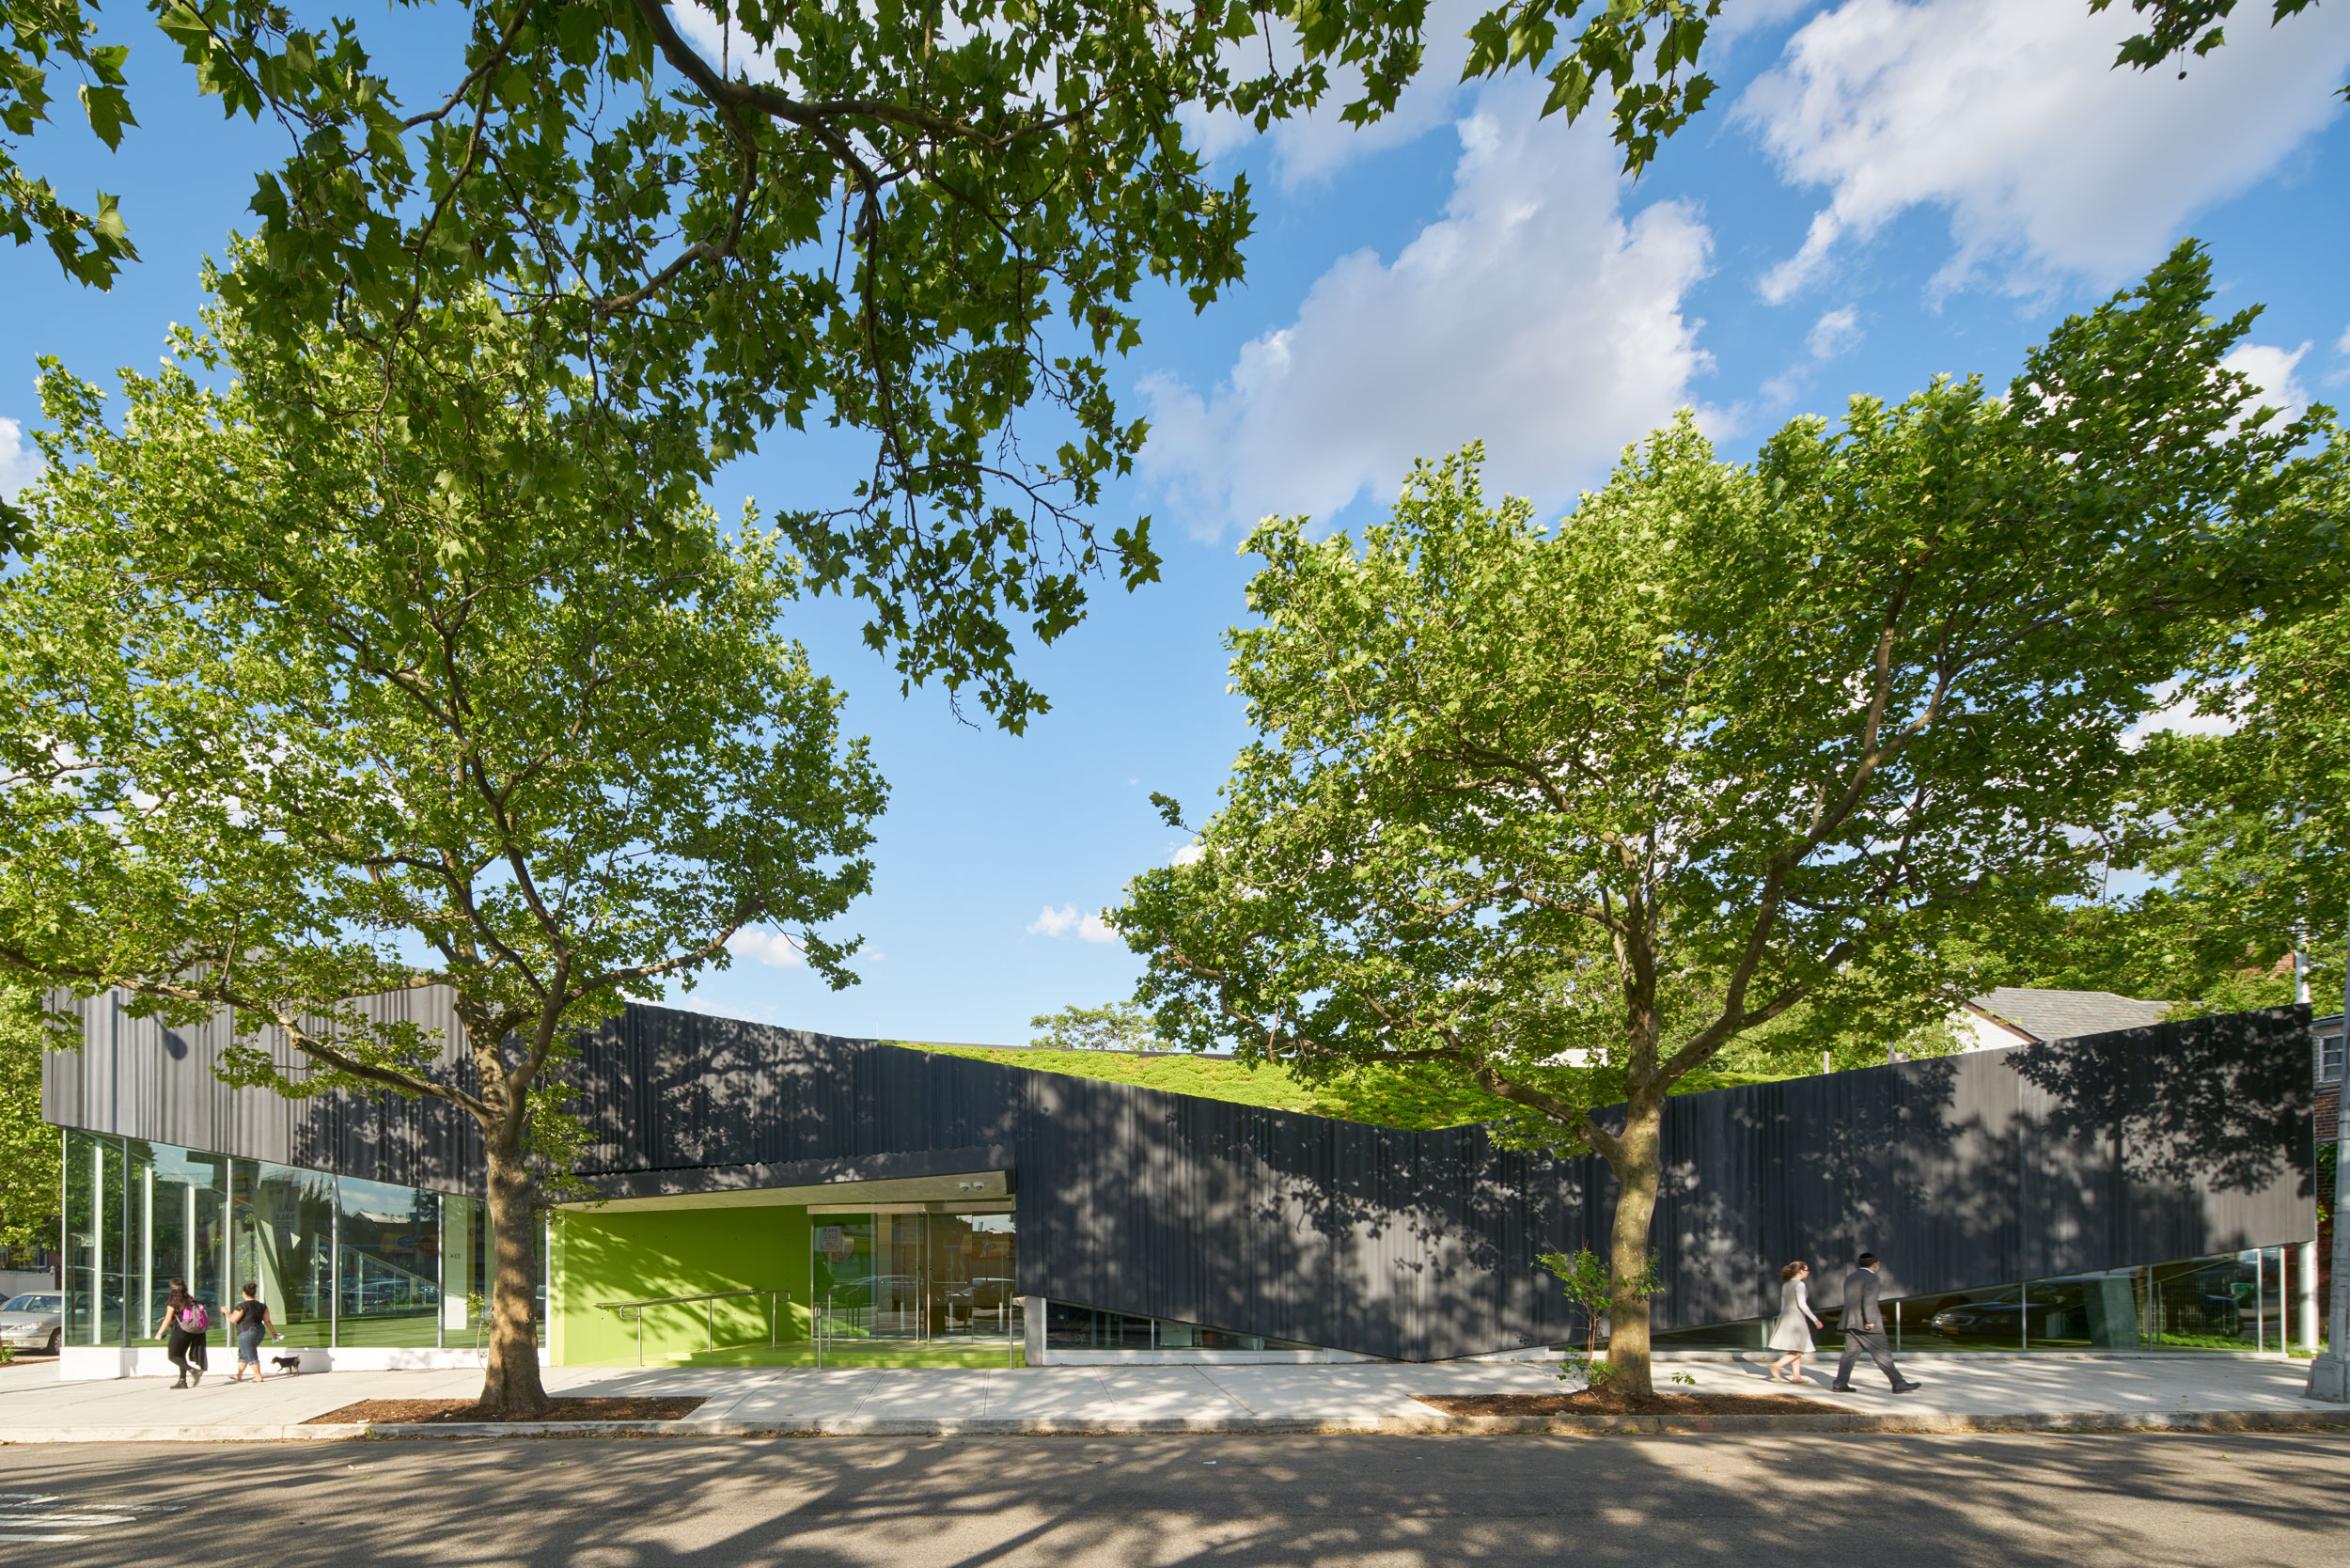 Kew Gardens Hills Library by WORKac. Photo: Bruce Damonte.